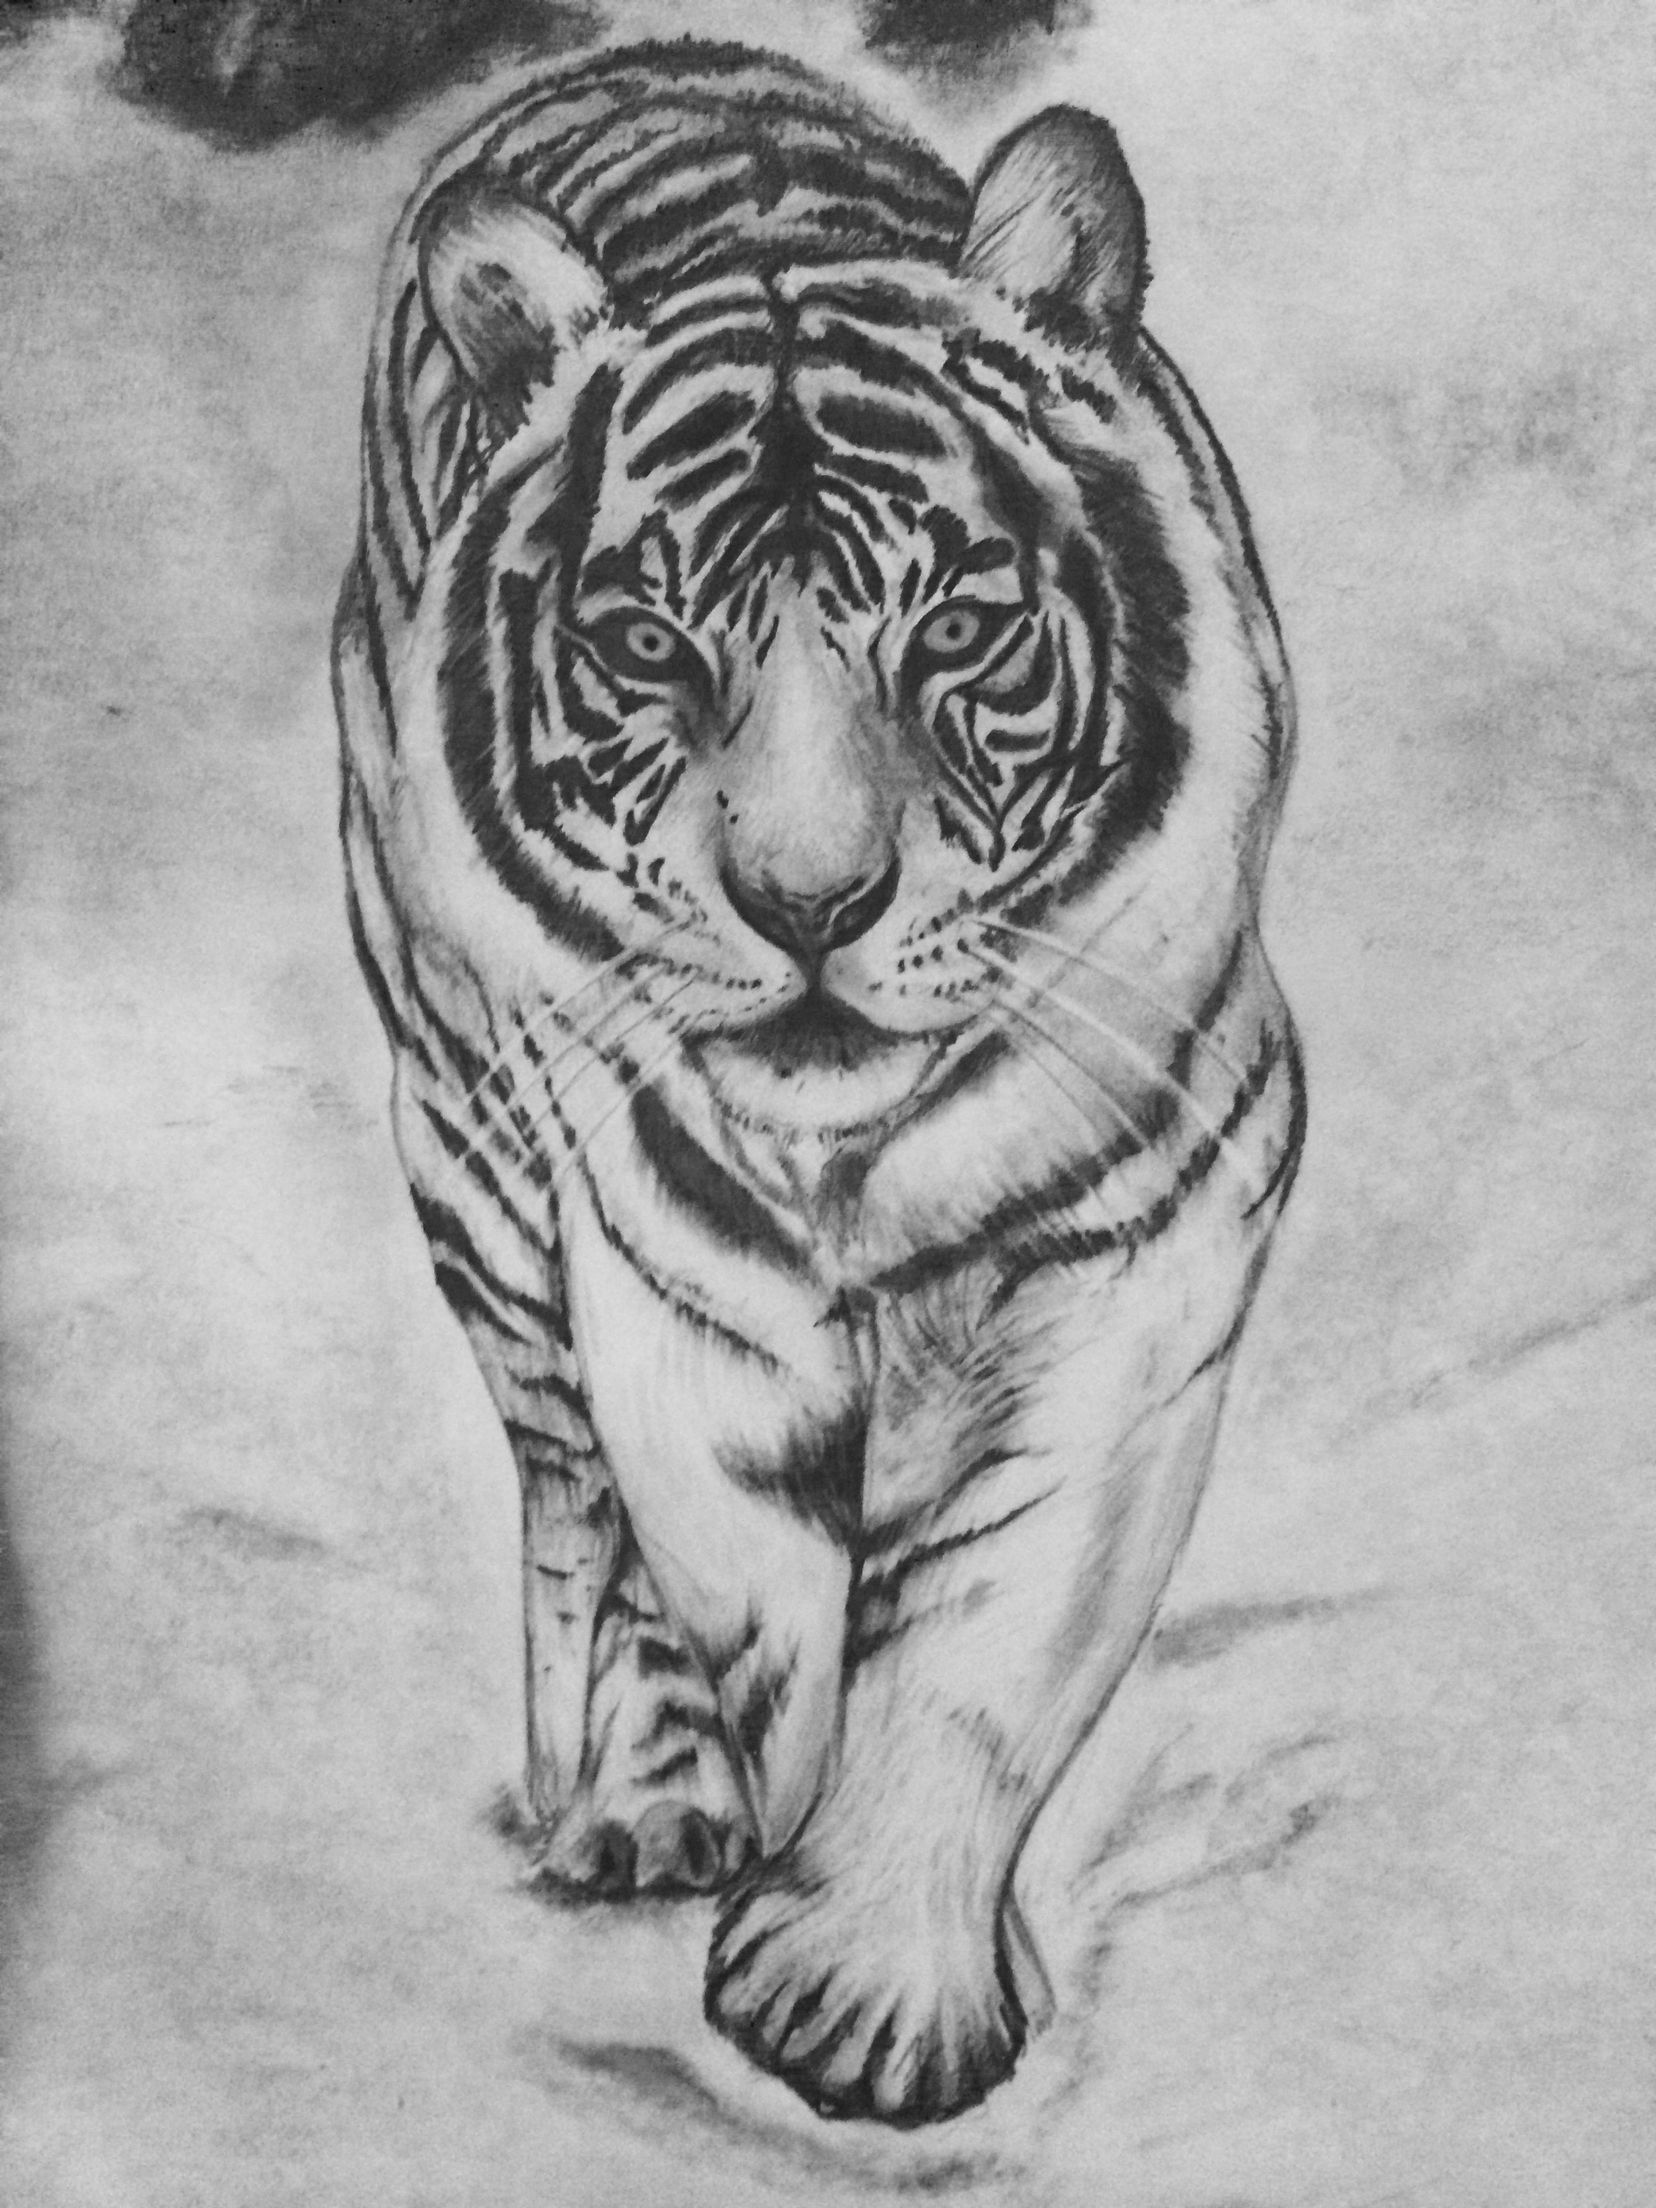 White tiger pencil drawing done by danielle weingart